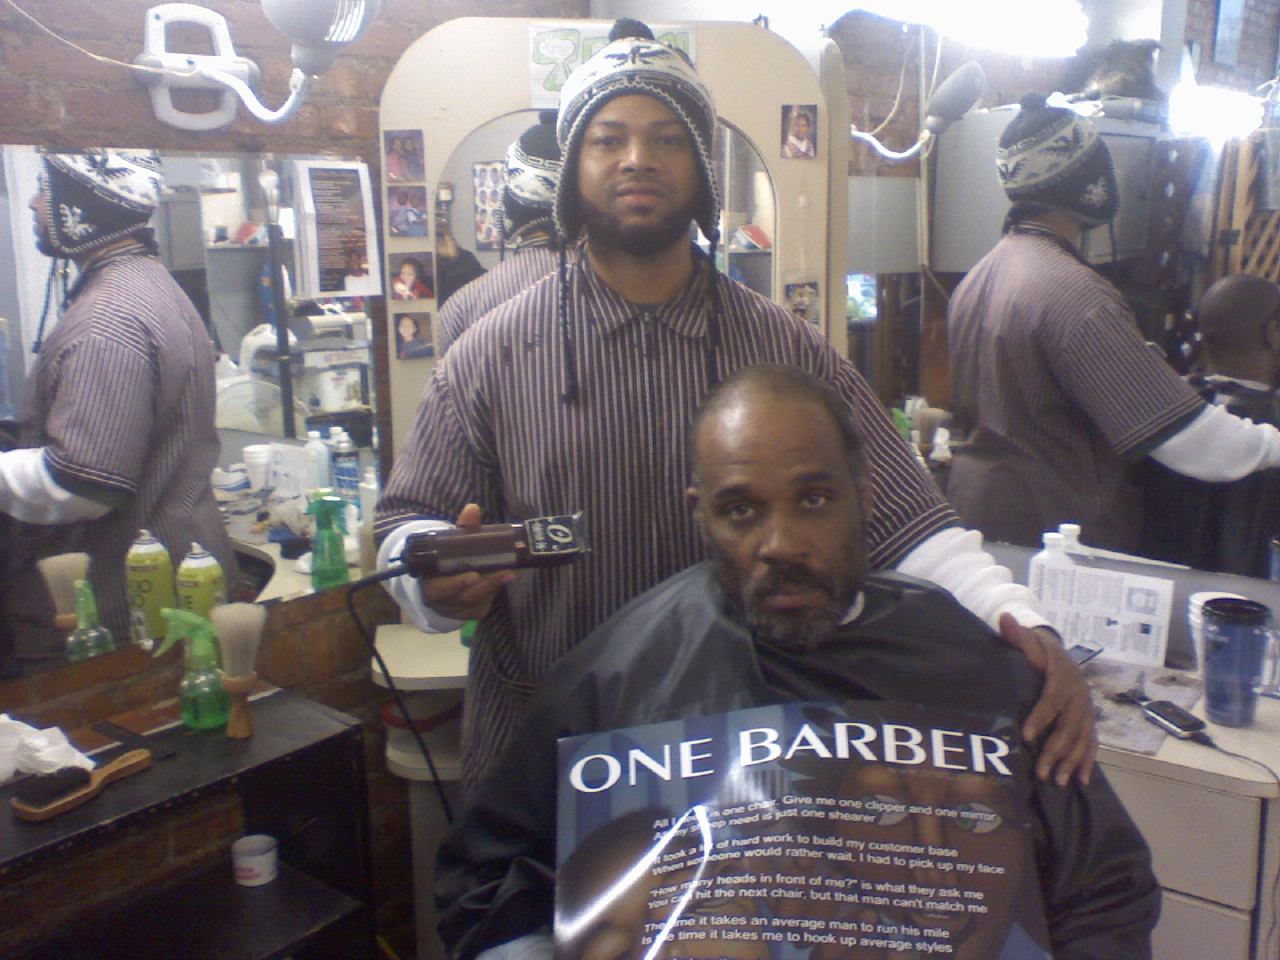 One barber pennsylvania barber shops in va hair shops for Abaca salon harrisburg pa